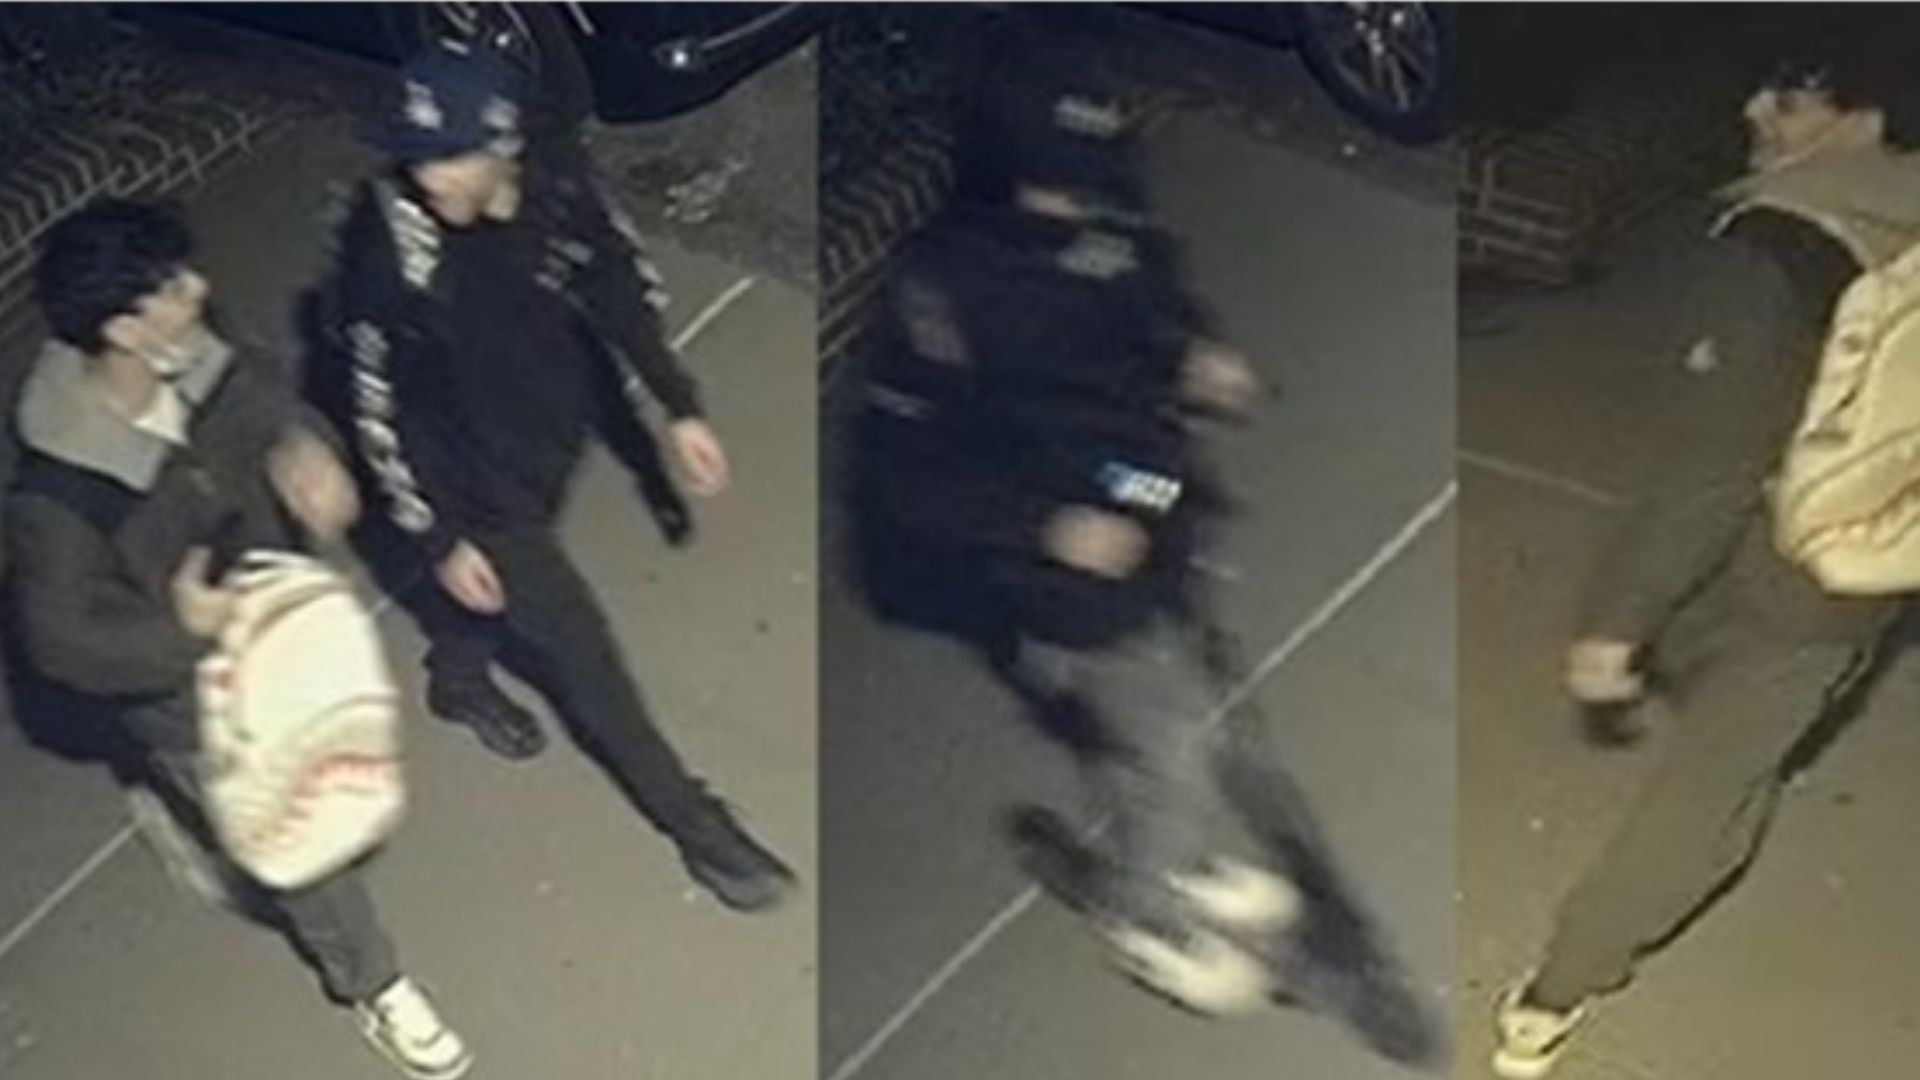 Surveillance image of three male individuals wanted in connection with a string of robberies on Manhattan's Upper West Side throughout March 2021, according to police. (NYPD)